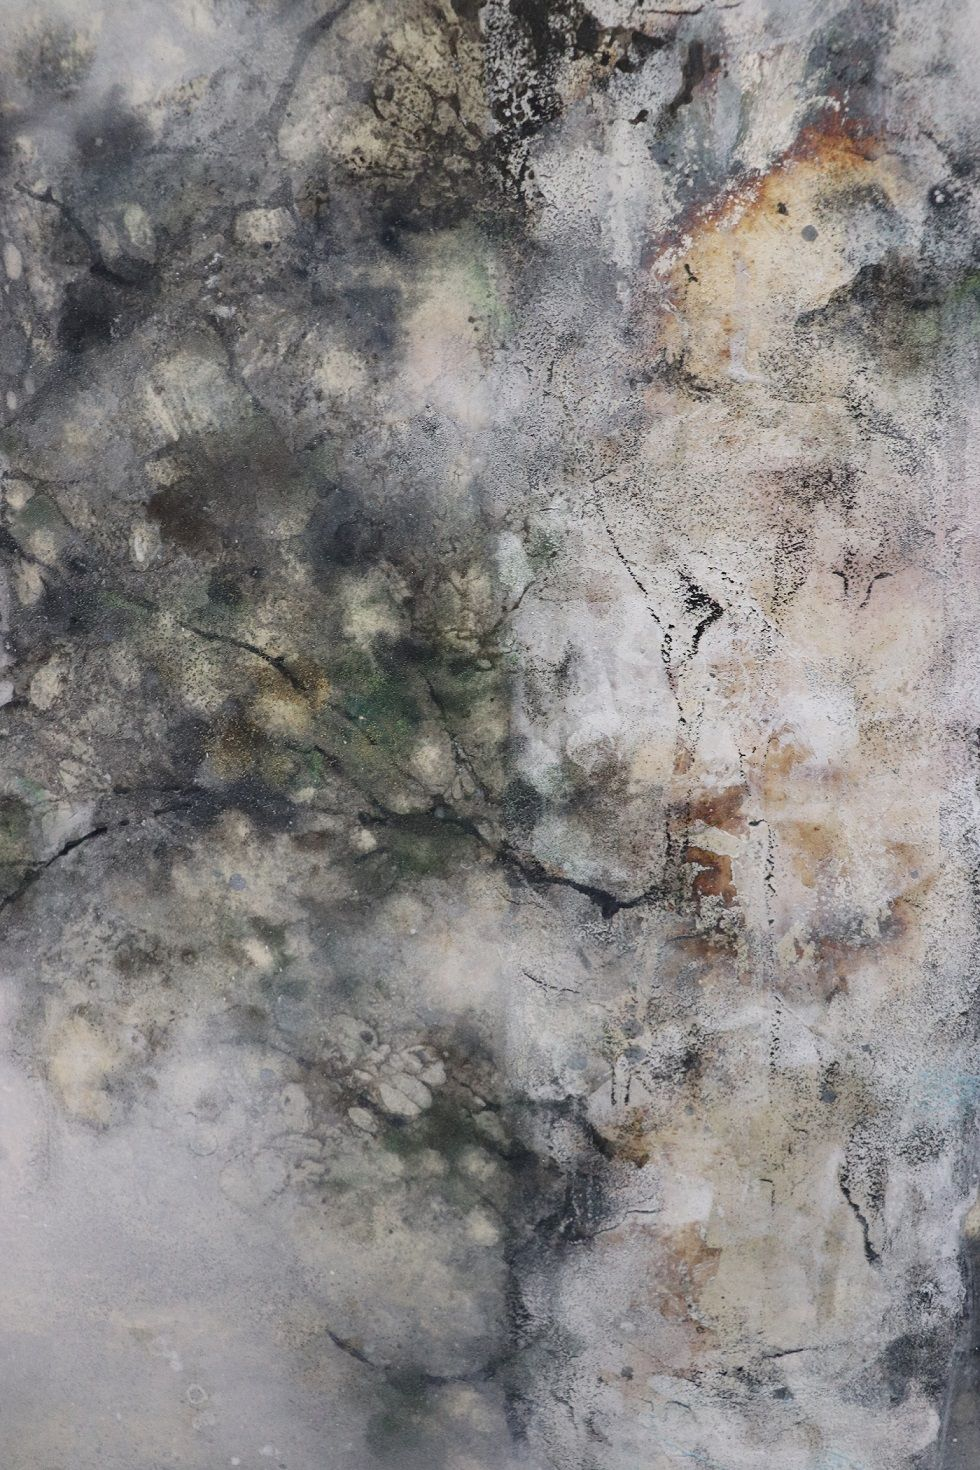 Plenitude,Chen Yiching,Contemporary painting, detail 4